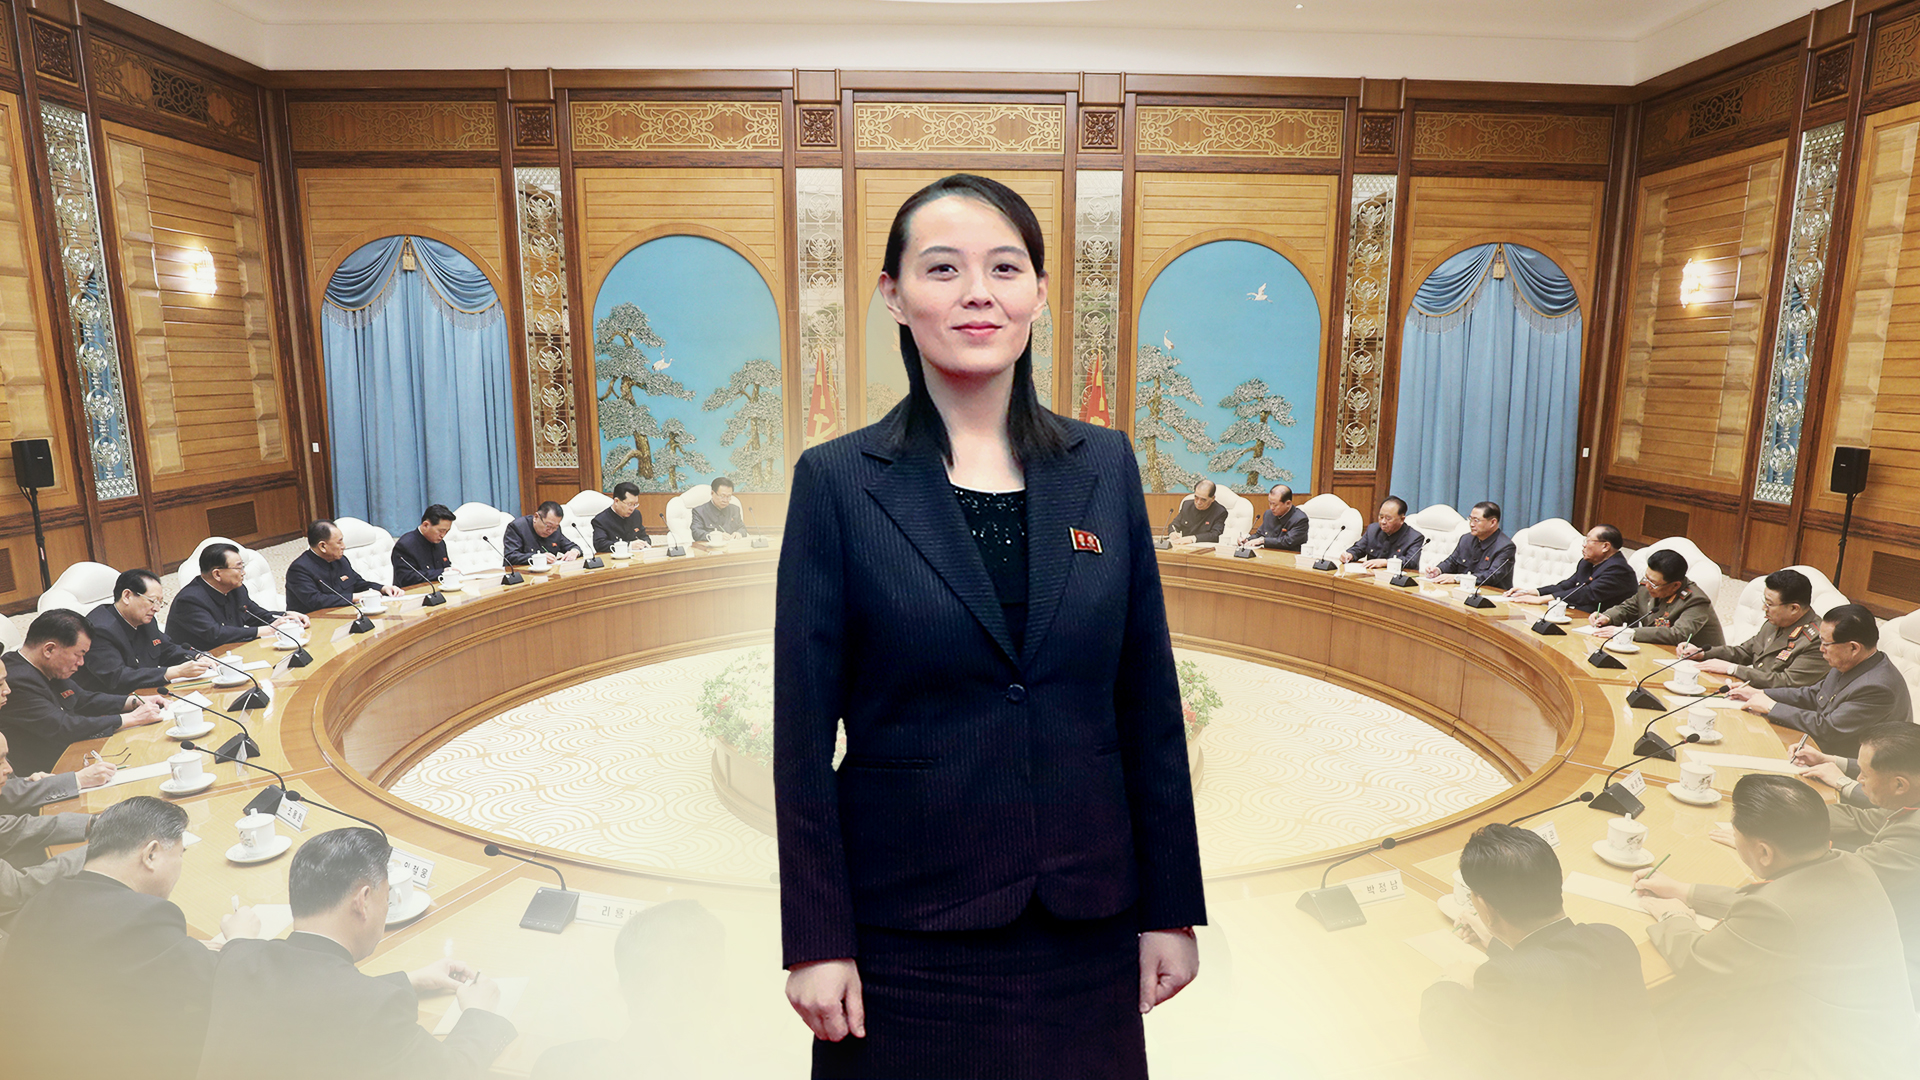 North Korean leader Kim Jong-un's sister, Kim Yo-jong